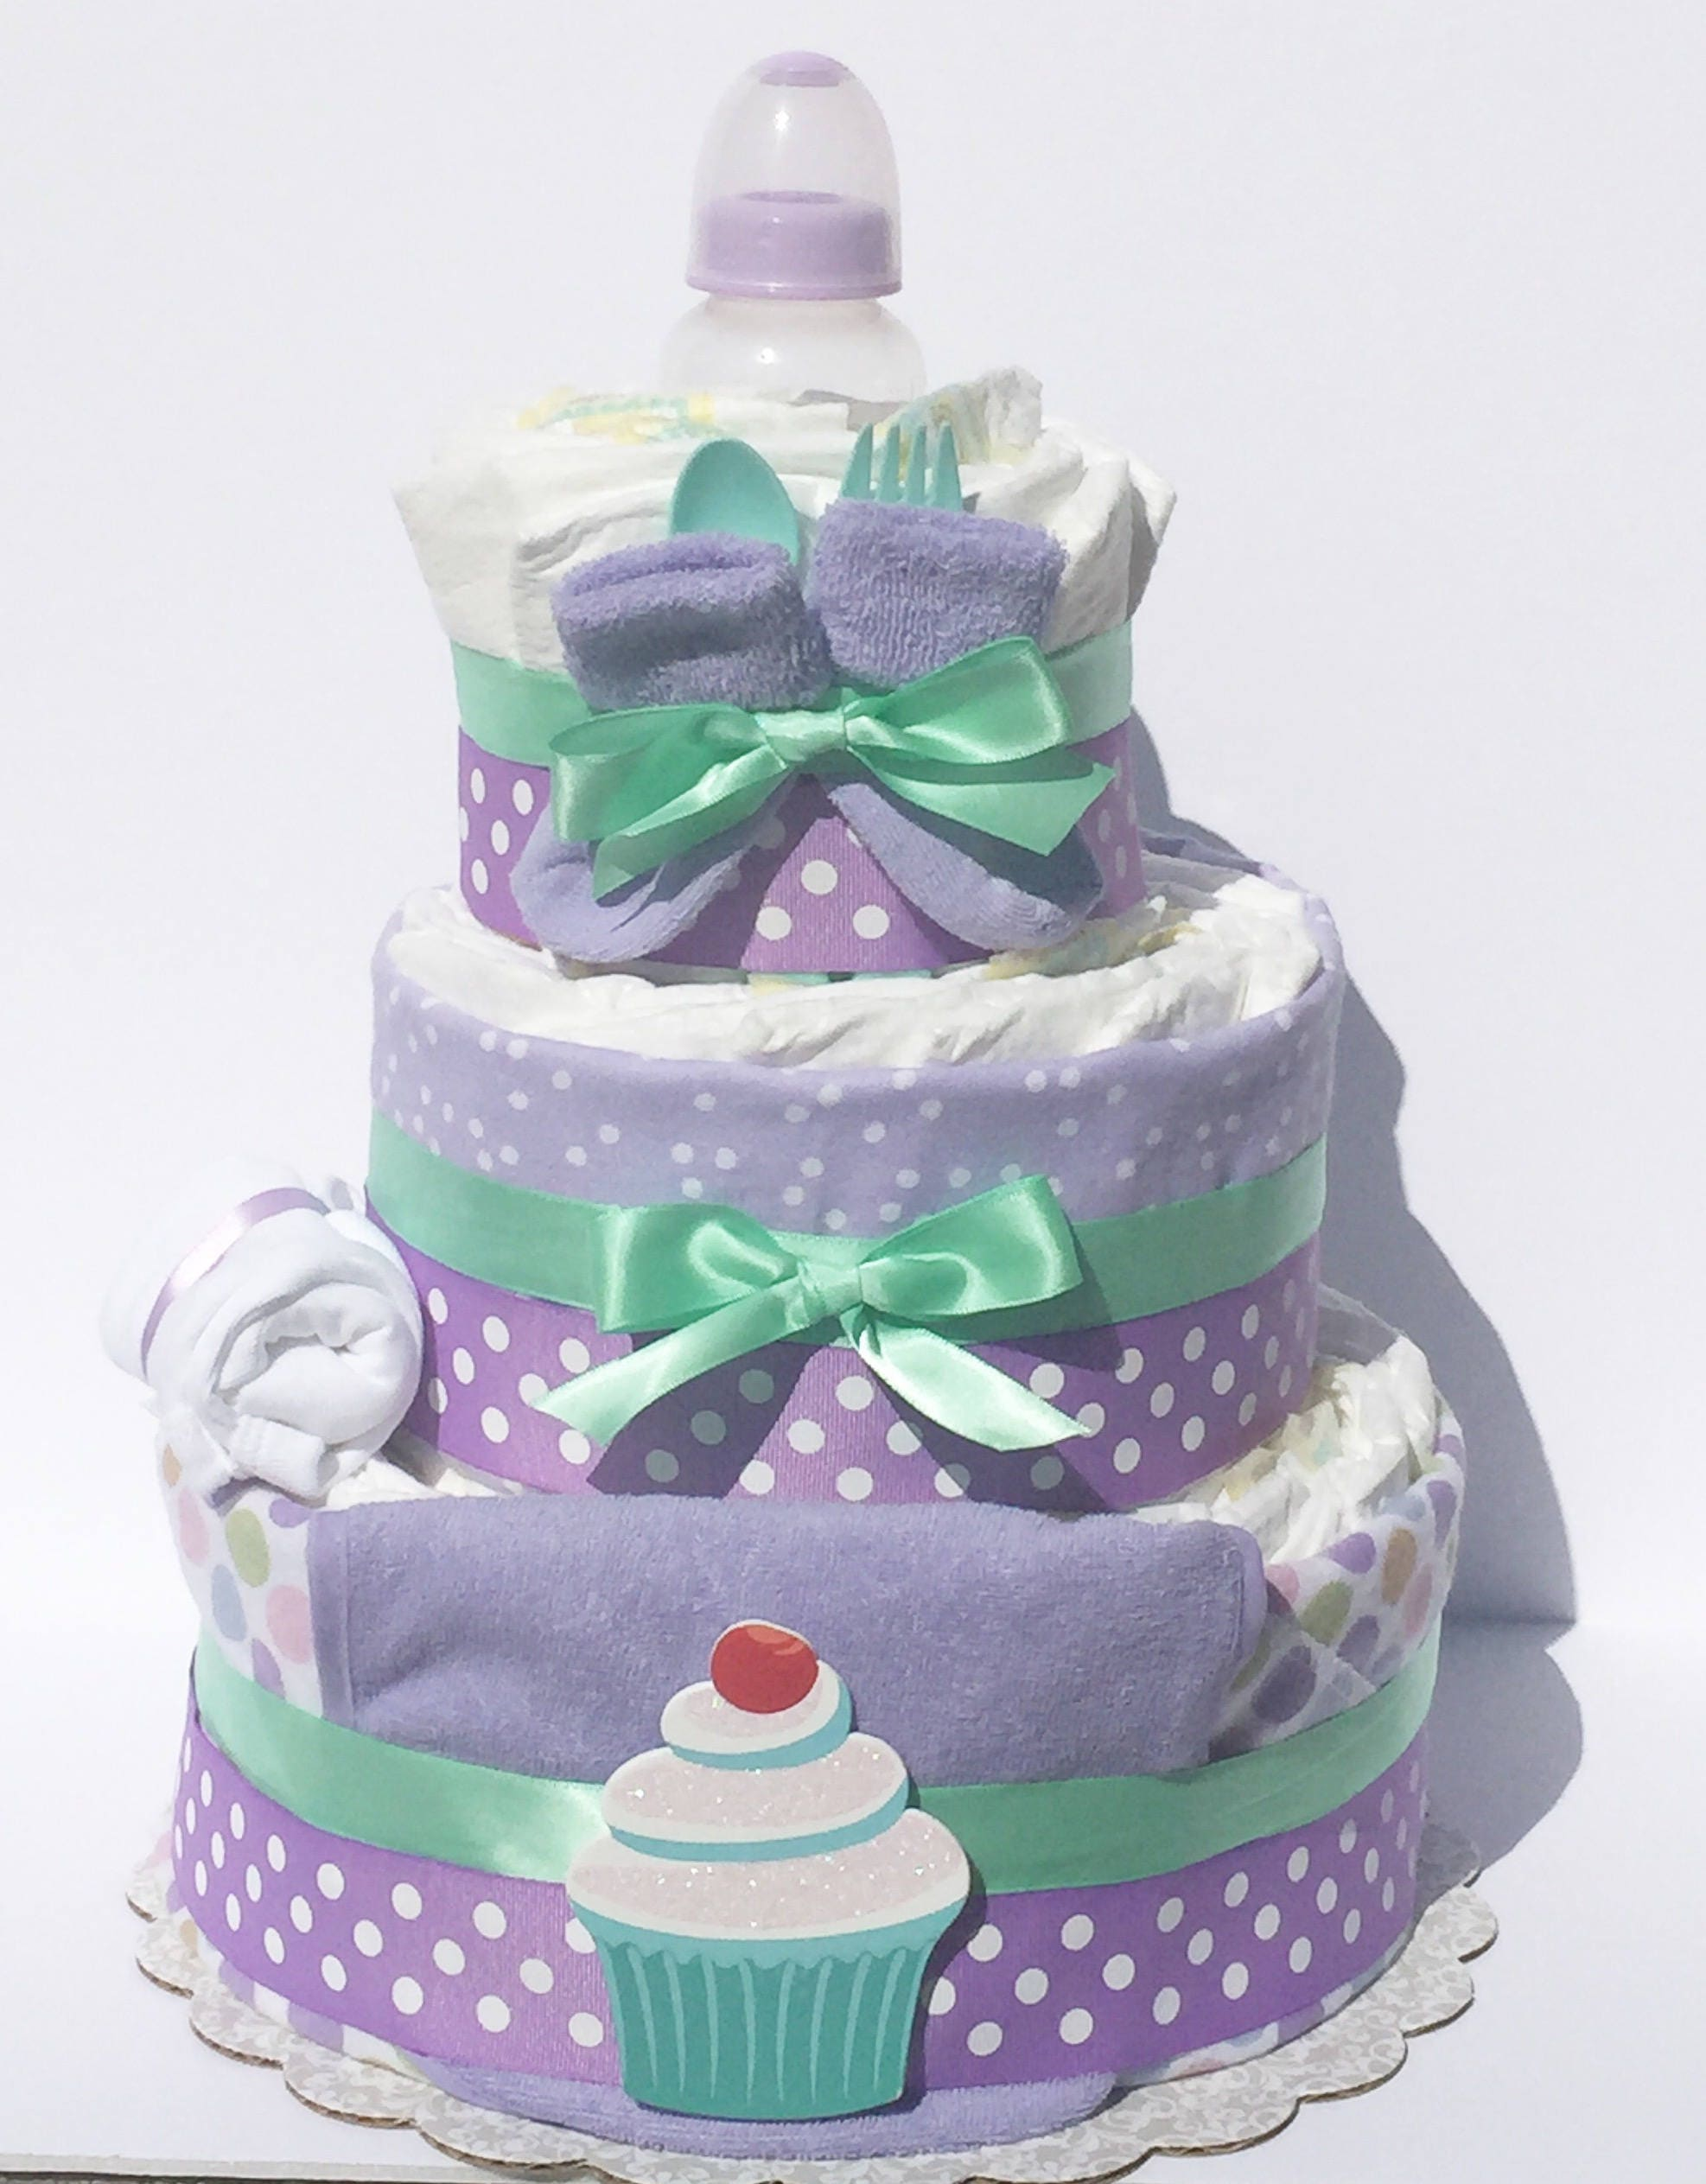 Cupcake Diaper Cake, Cupcake Baby Shower Decorations, Lavender Mint Diaper  Cake, Lavender Baby Shower Decorations, Mint Baby Shower Supplies